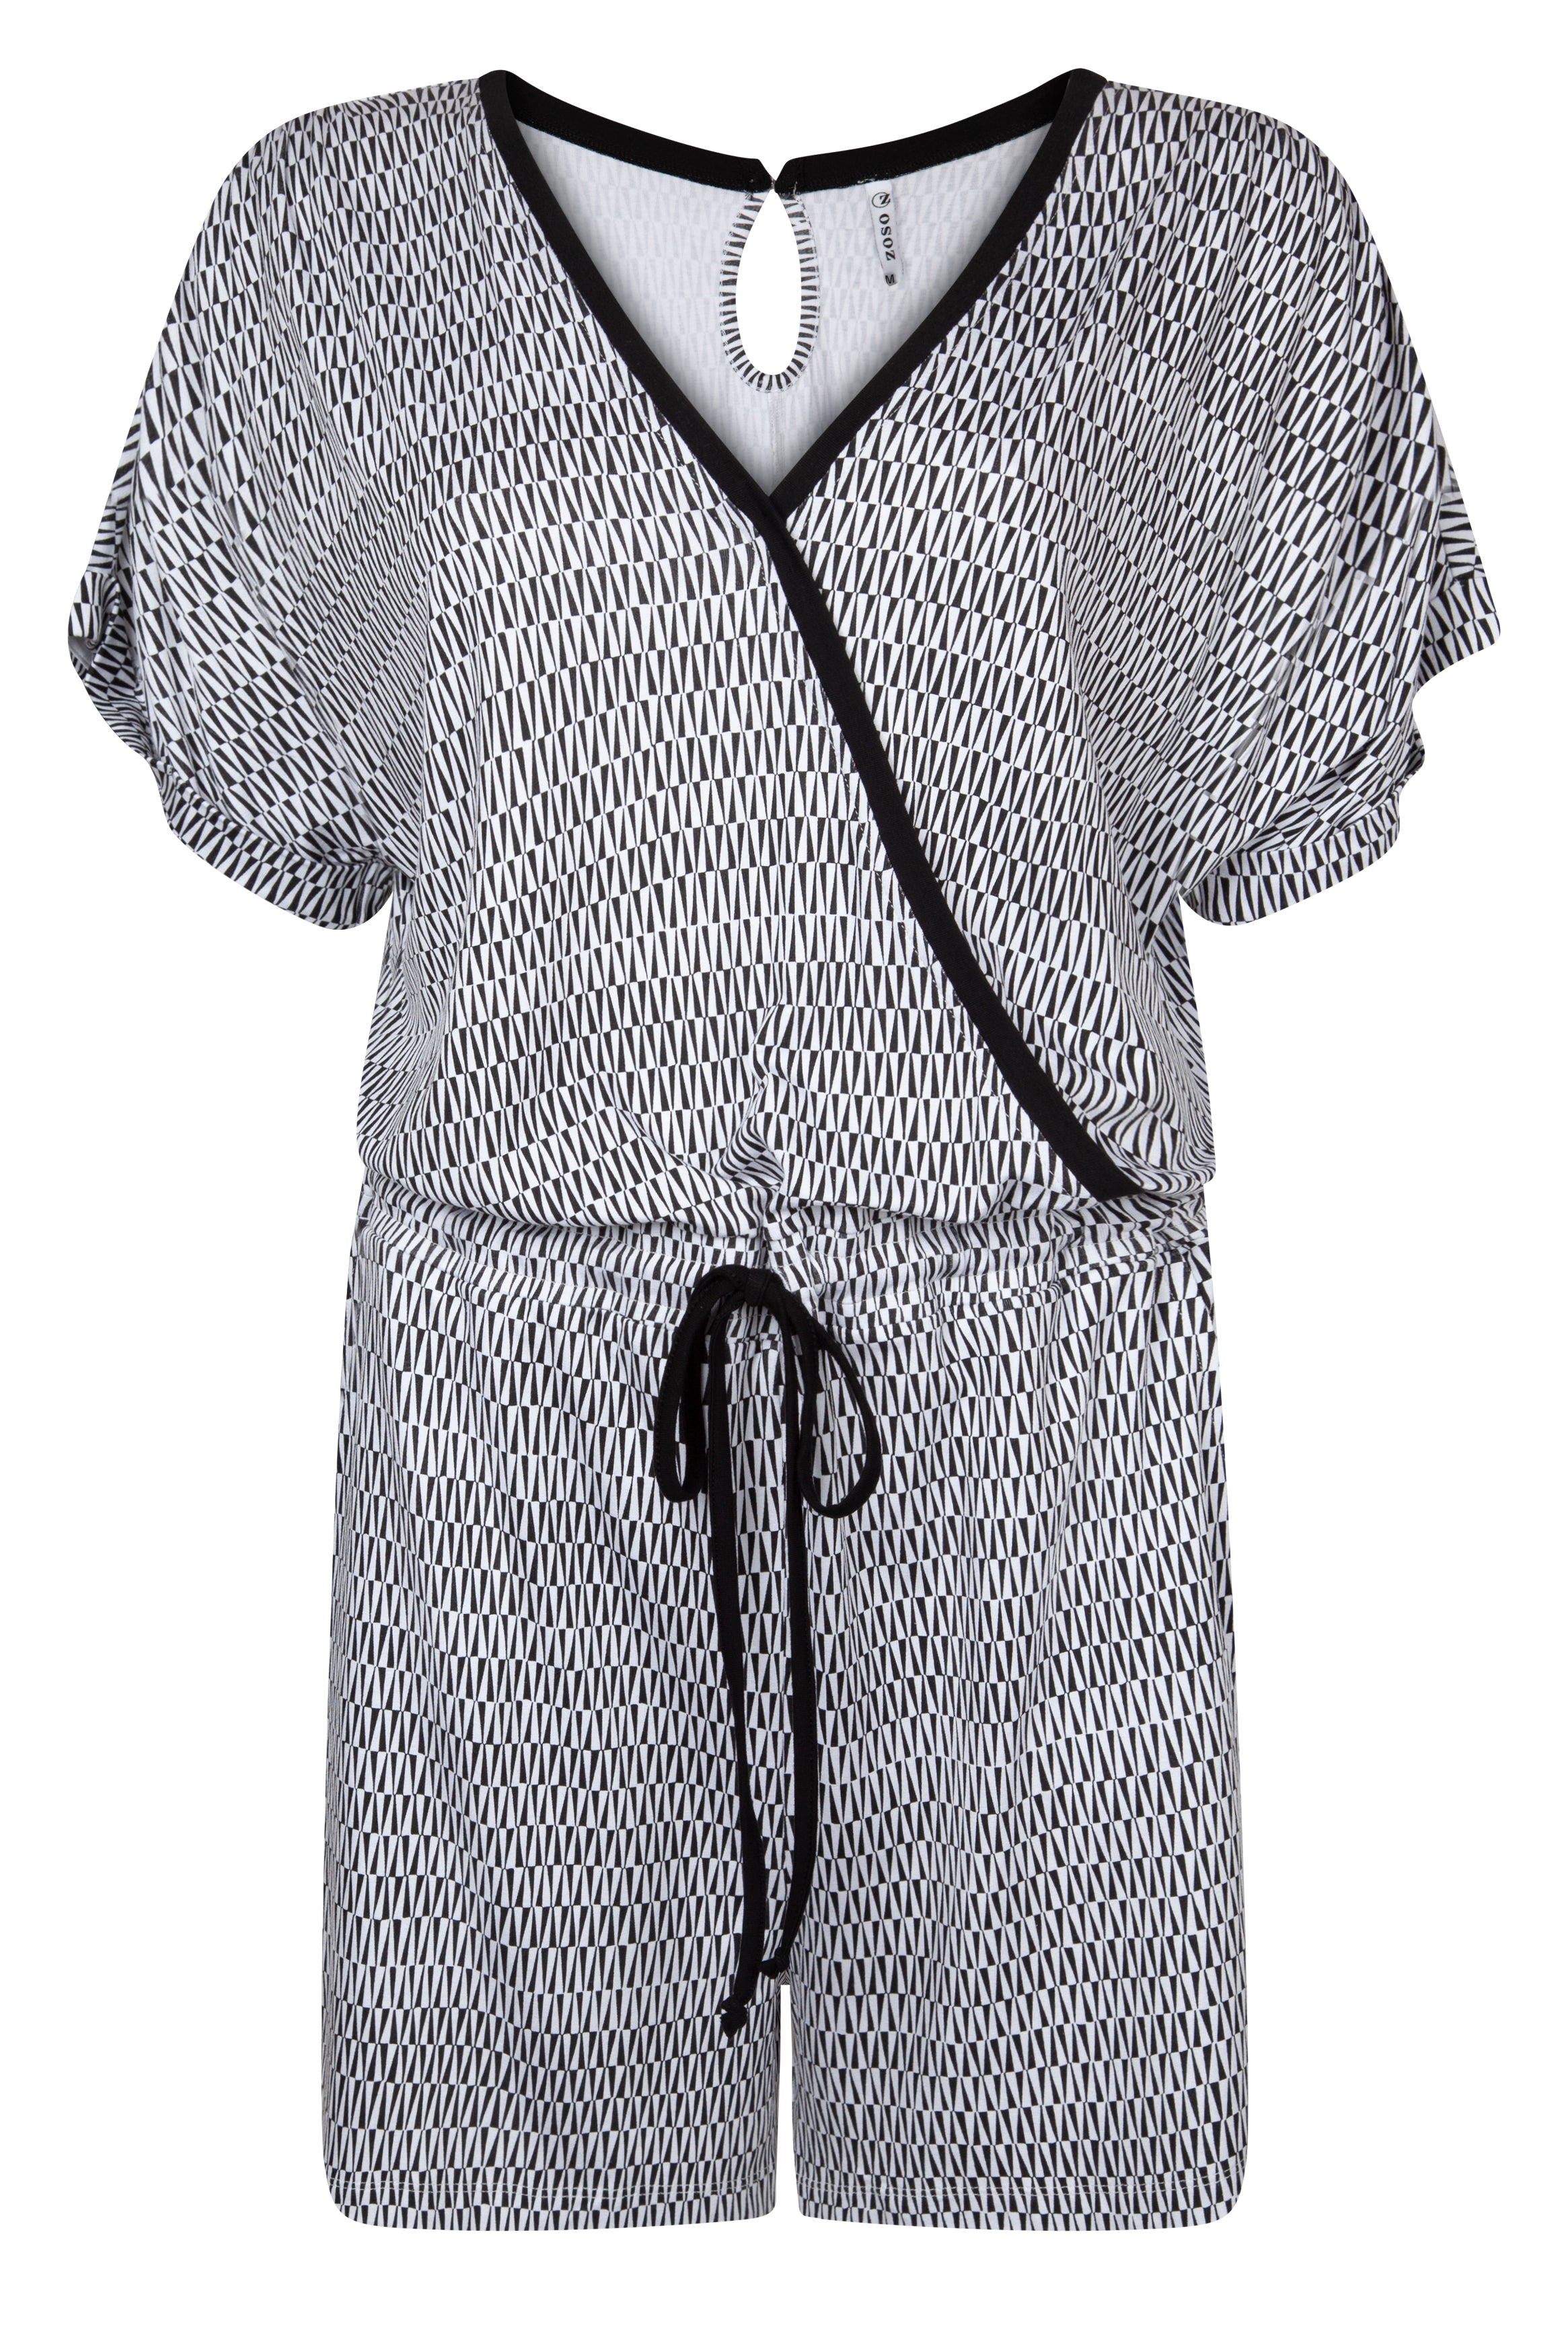 Zoso - Jumpsuit Aiko Black & White